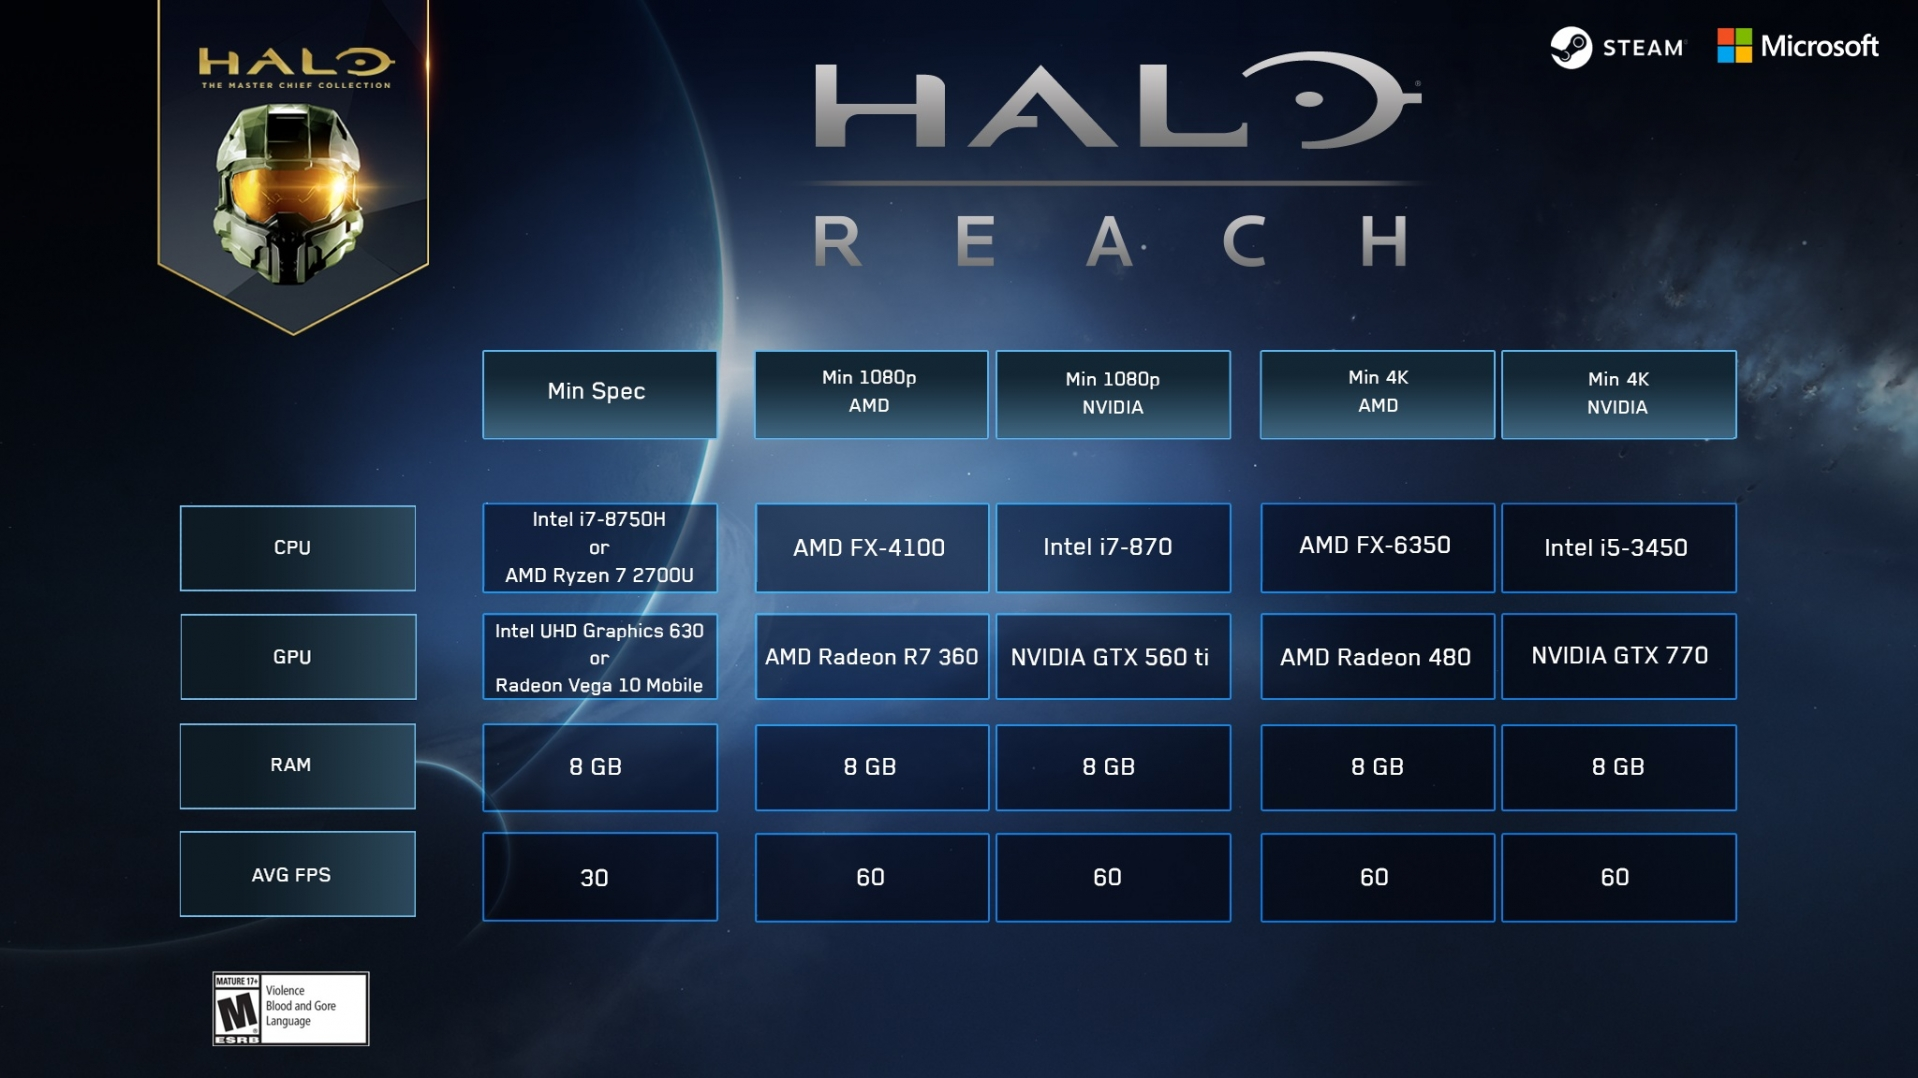 Halo Reach PC Rig